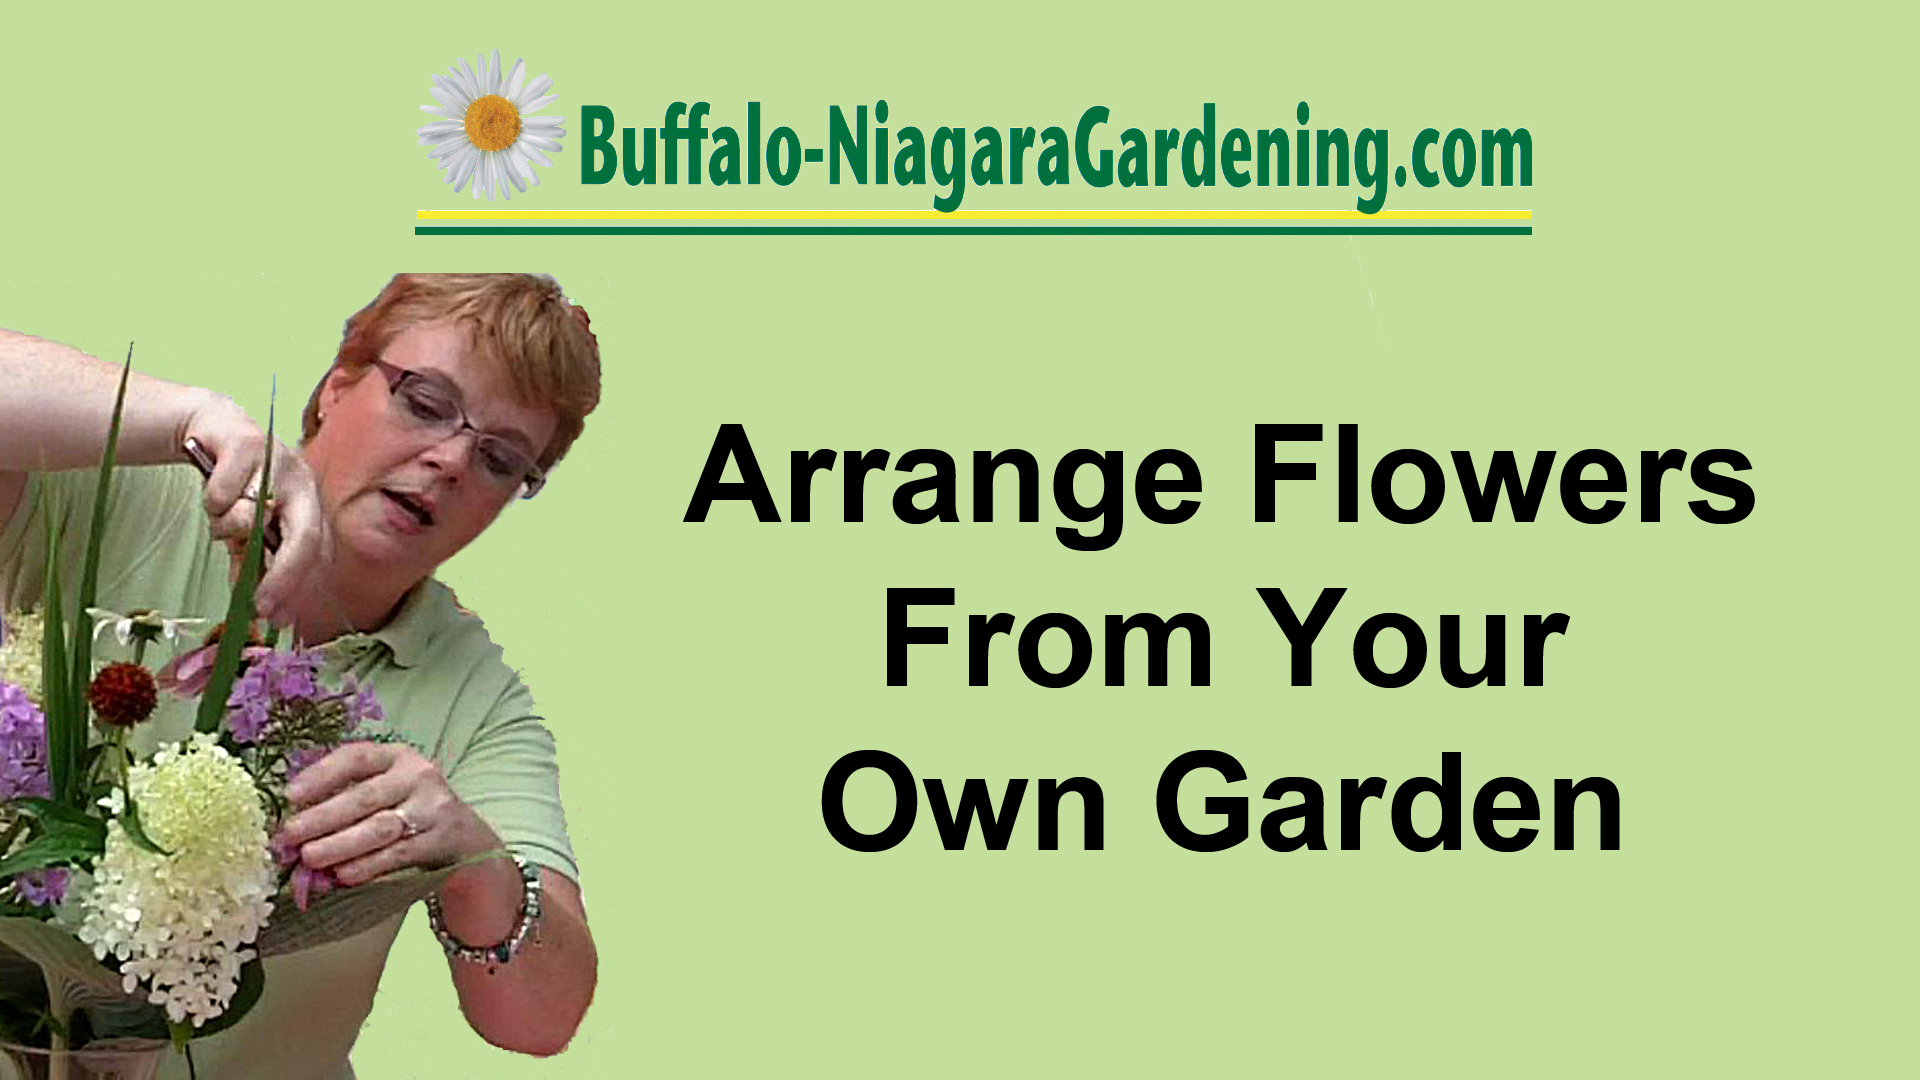 image for video on how to arrange flowers from your garden in Buffalo NY